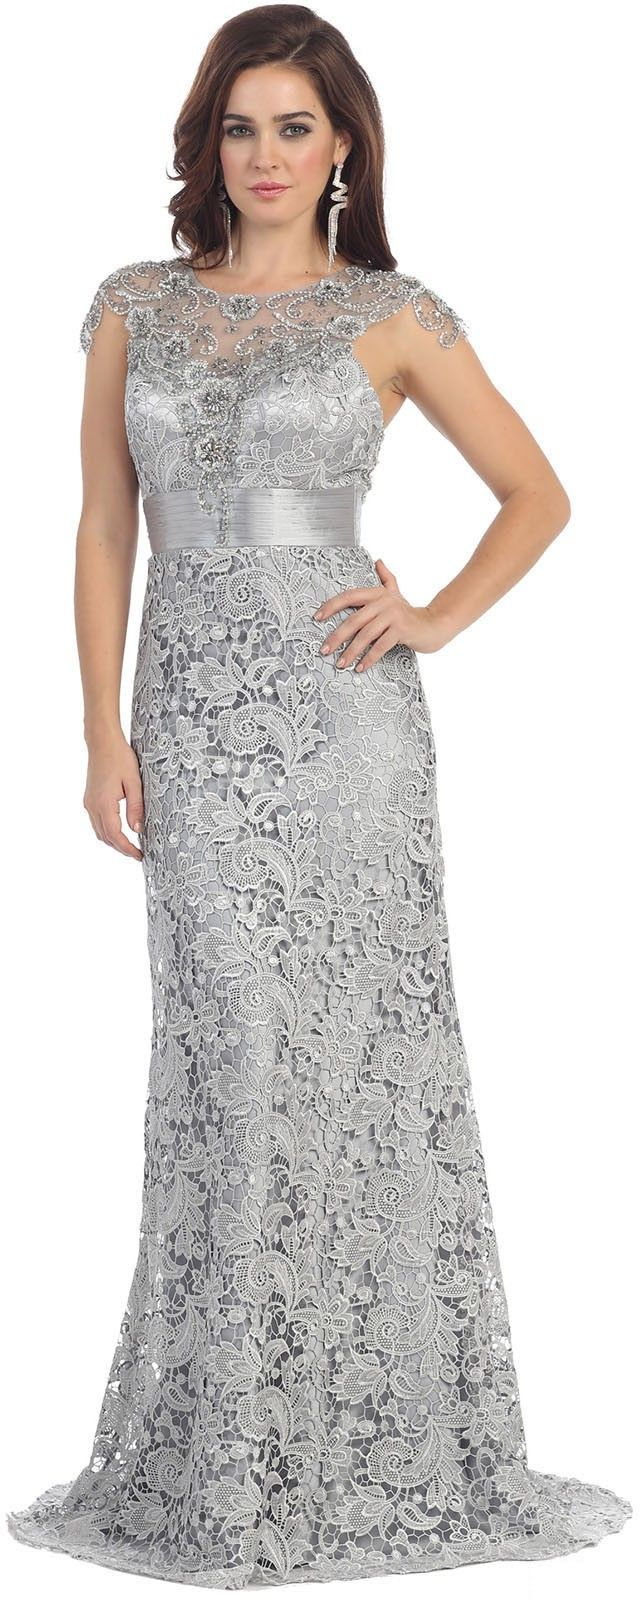 aa04876f9421 Lace bridesmaid dress Walmart